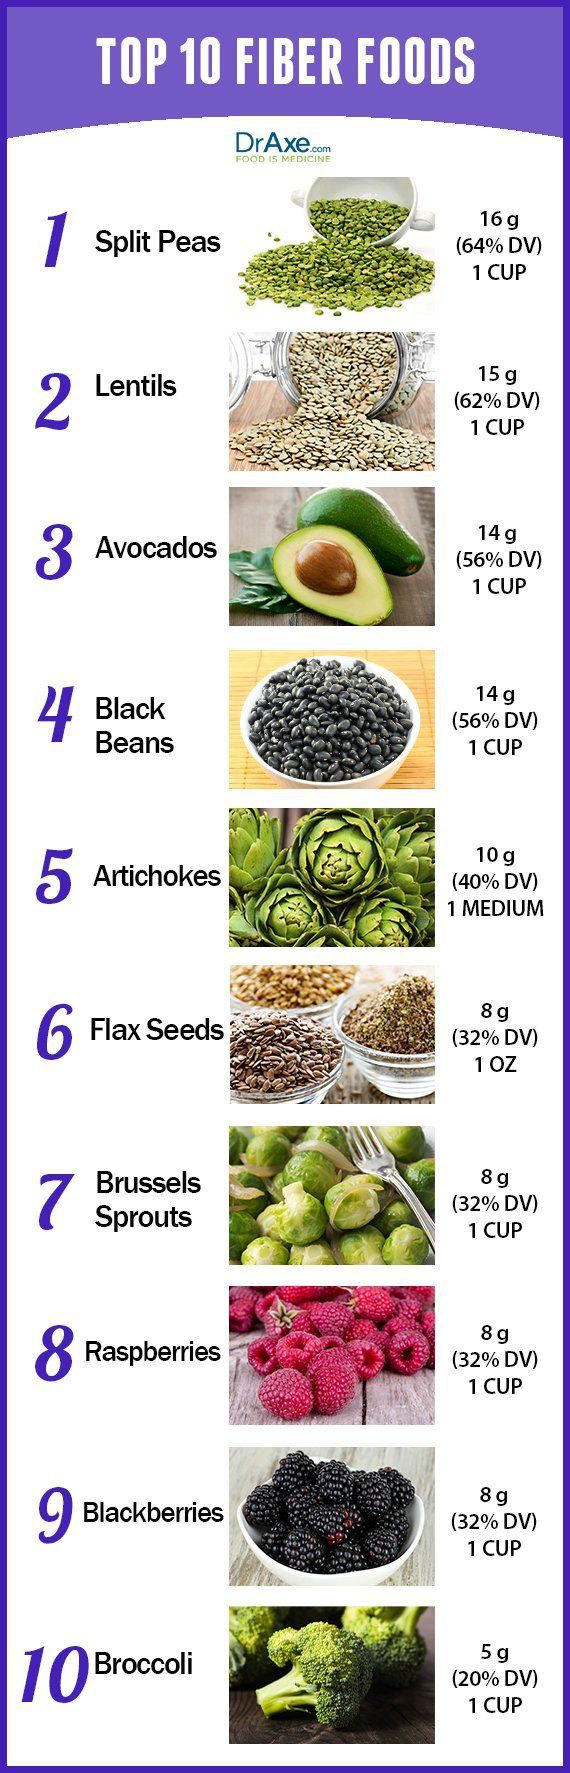 Top 10 High Fiber Foods - DrAxe.com